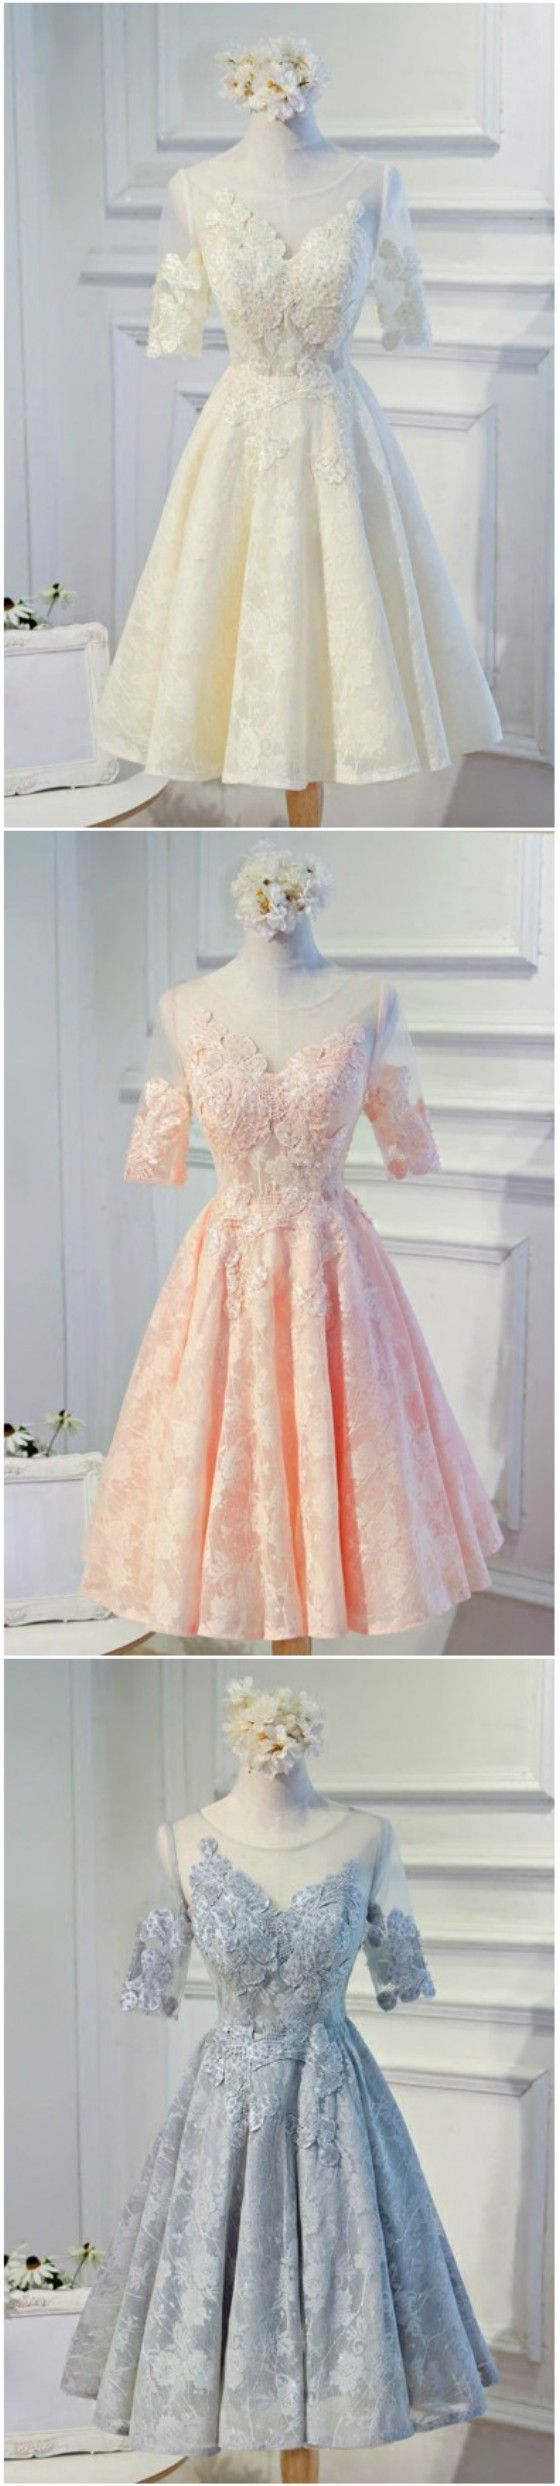 Champagne/ Pink/Grey Feminine A-line Scoop Neck Tea-length Tulle Homecoming Dress With Appliques Lace